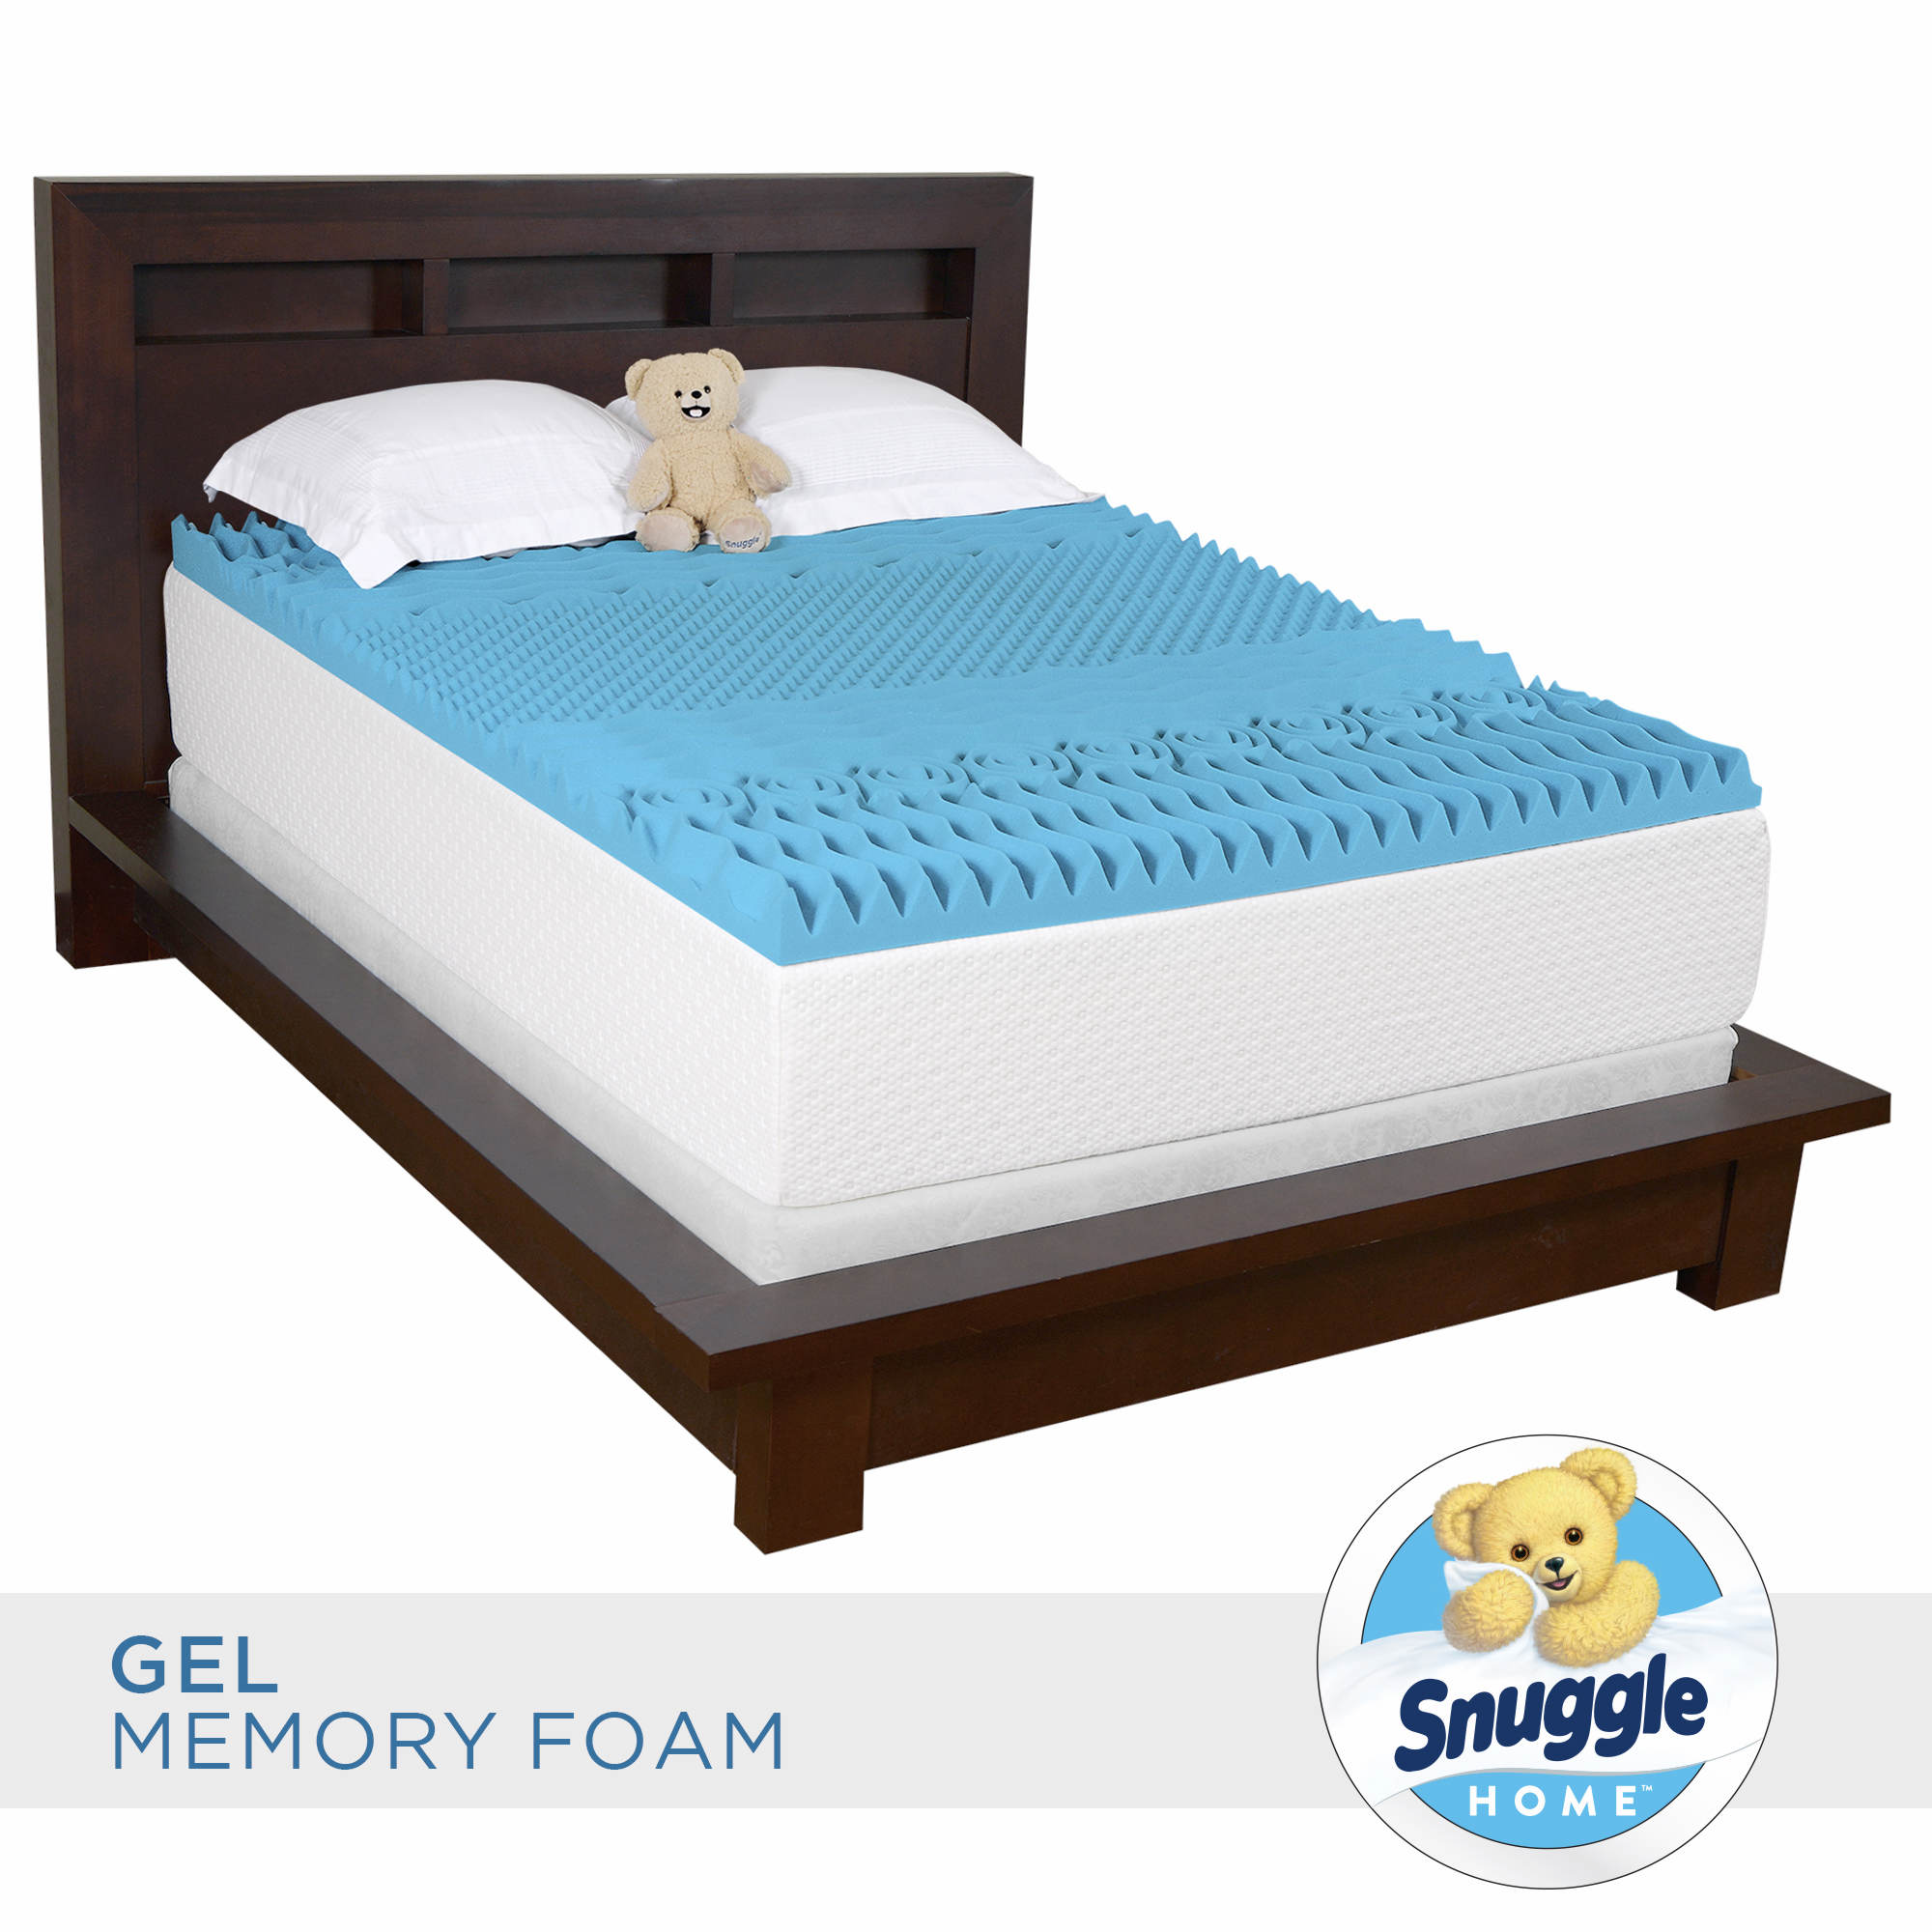 Snuggle home twin size 3 gel memory foam 7 zone mattress topper with skirted cover bj 39 s Memory foam mattress topper twin